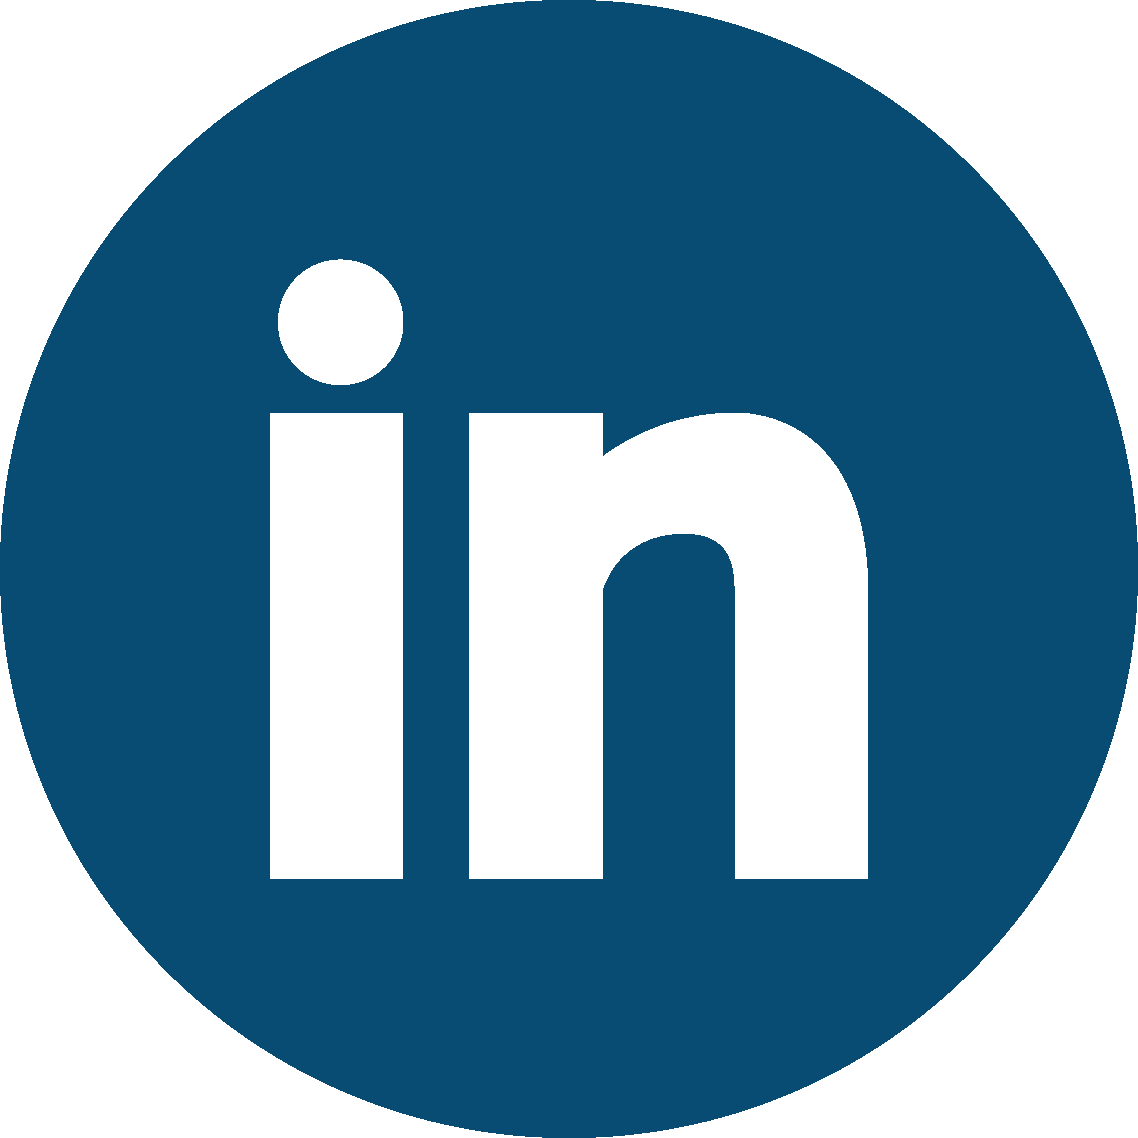 connect with Chuck Hengel on LinkedIn